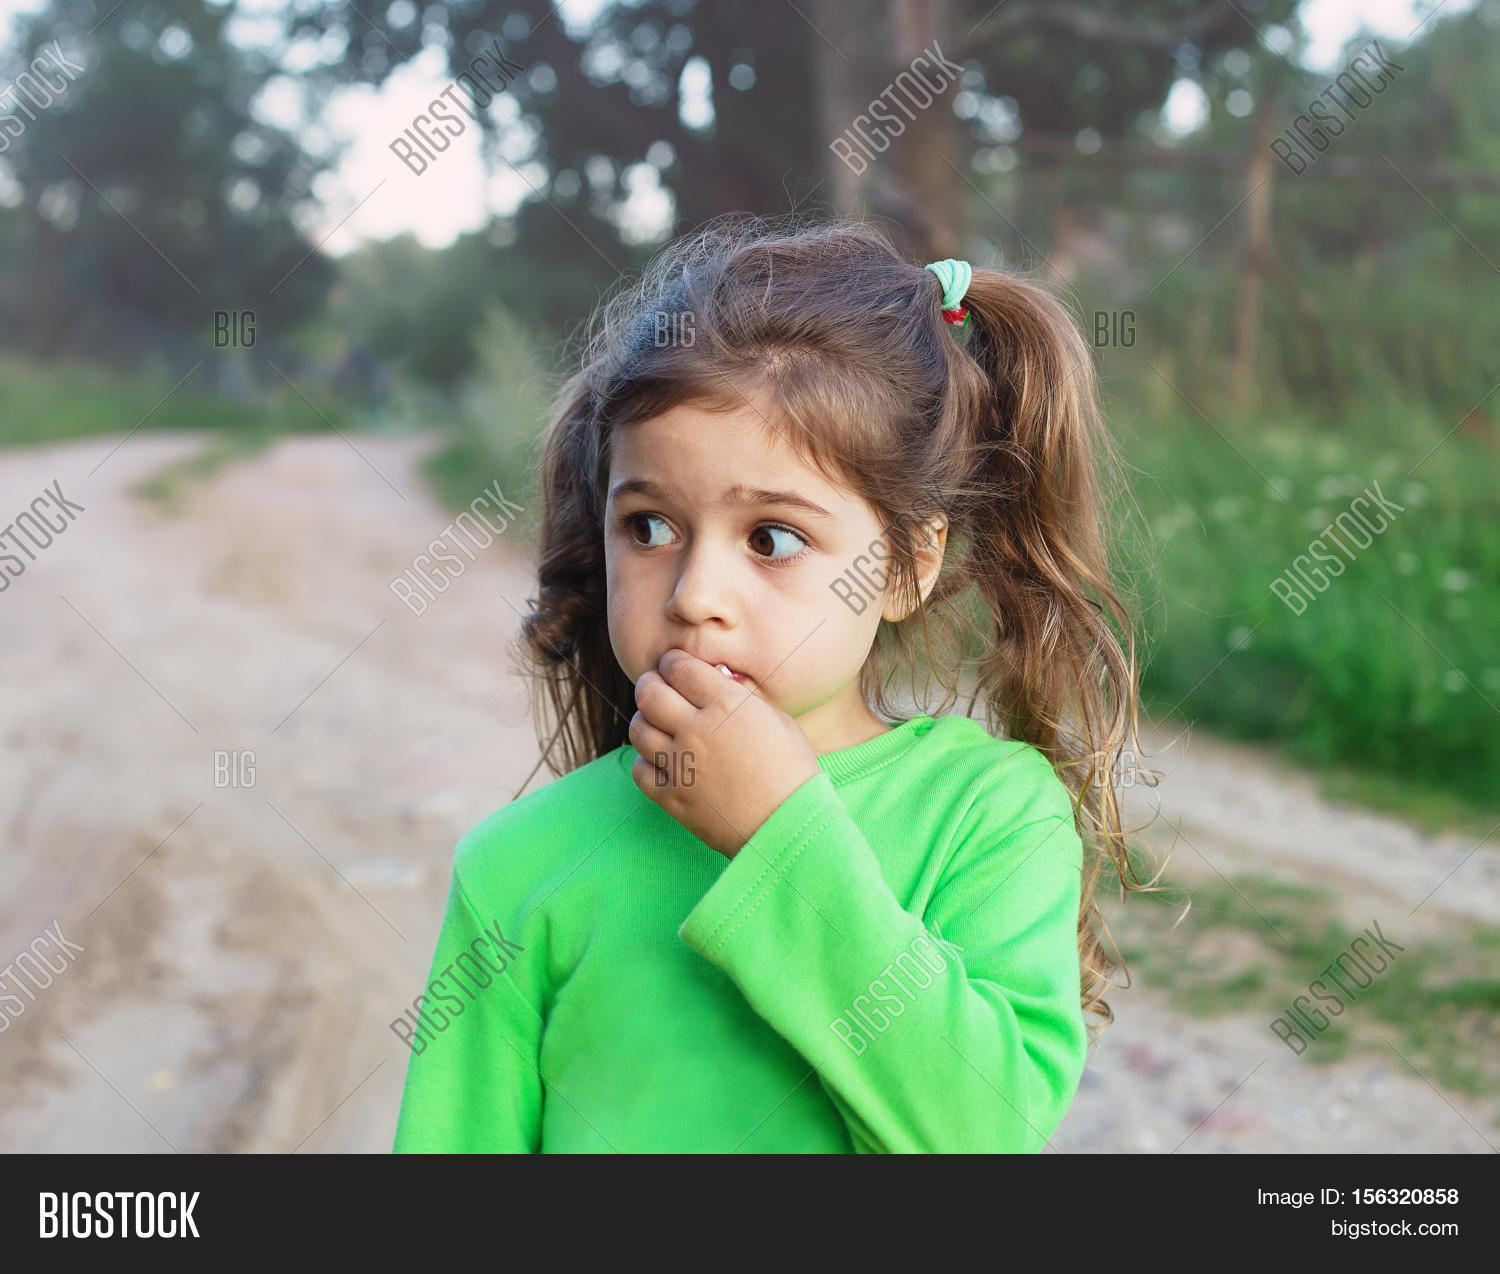 Sad Cute Little Girl Image  Photo Free Trial  Bigstock-3986